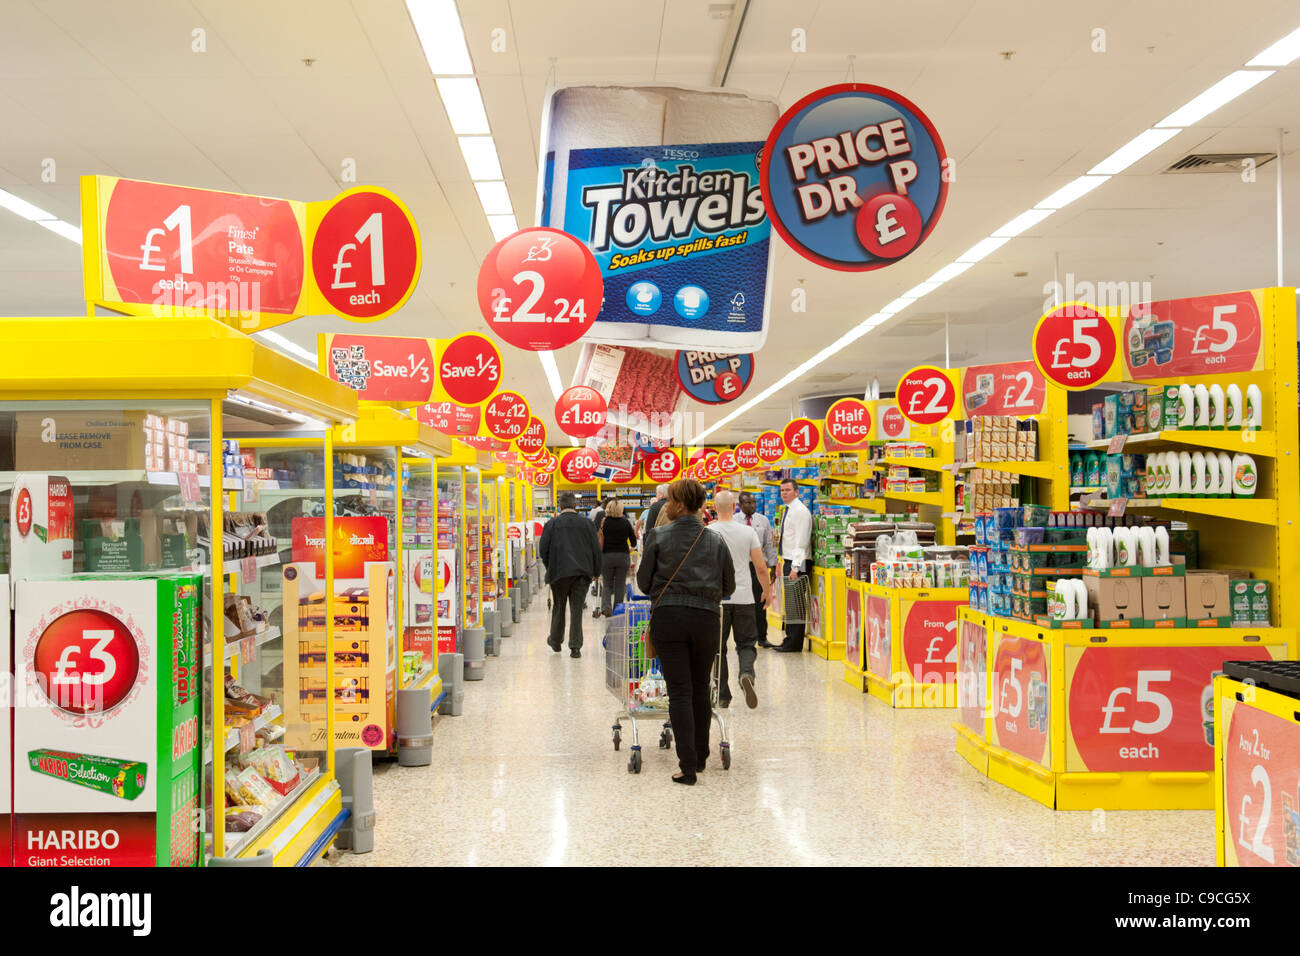 Tesco is the market leader in British retail and one of the world's largest grocery retailers. Their Gift Cards are a superb gift idea for family or friends.